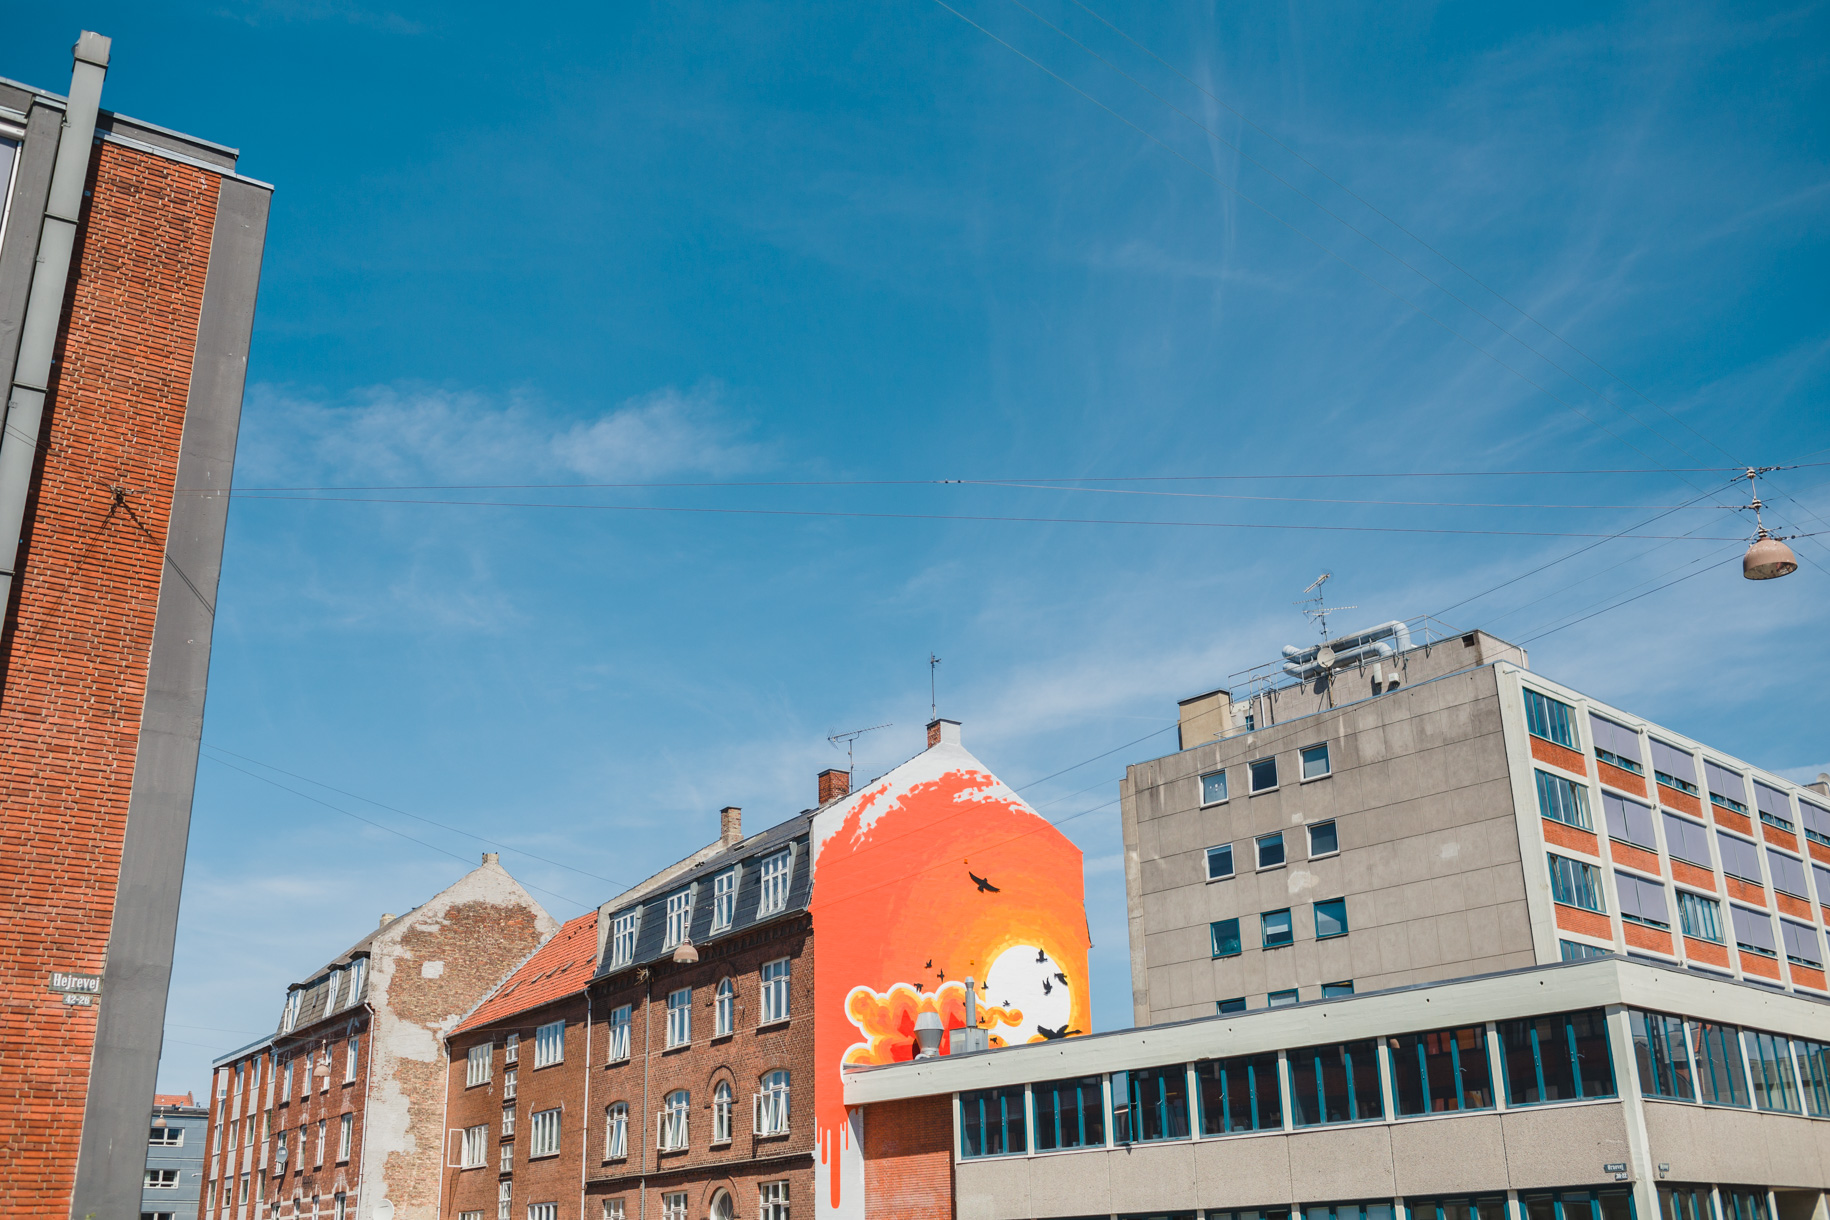 A mural in the Nørrebro neighborhood, Copenhagen, Denmark.